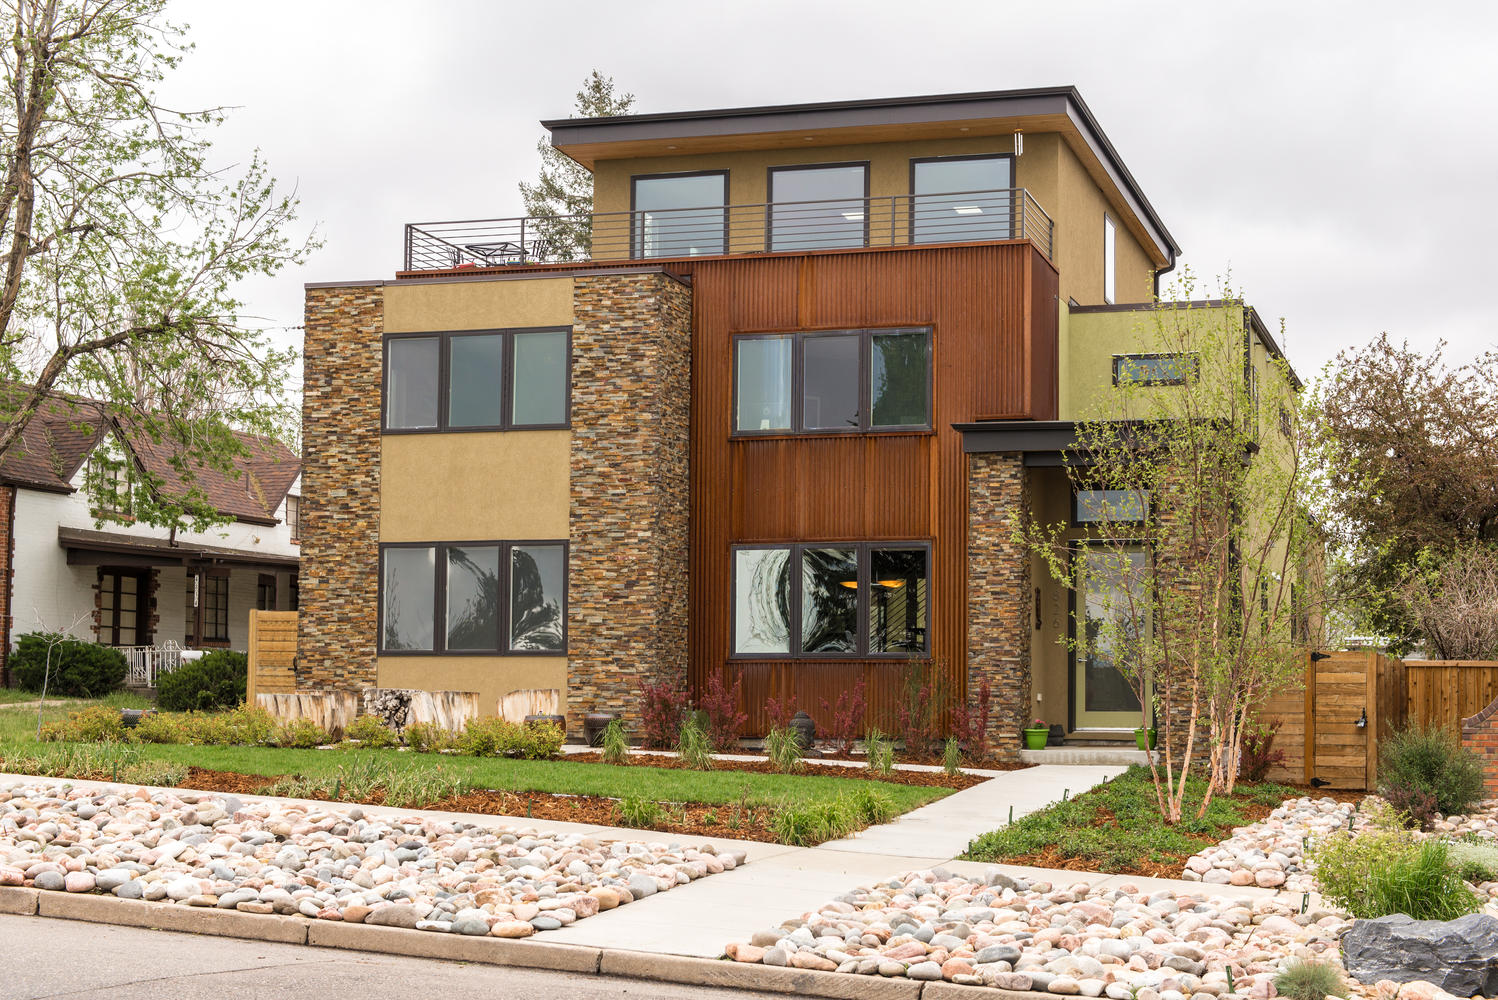 Single Family Home for Sale at Rustic Modern Living in Berkeley 4826 Tennyson Street Berkeley, Denver, Colorado, 80212 United States